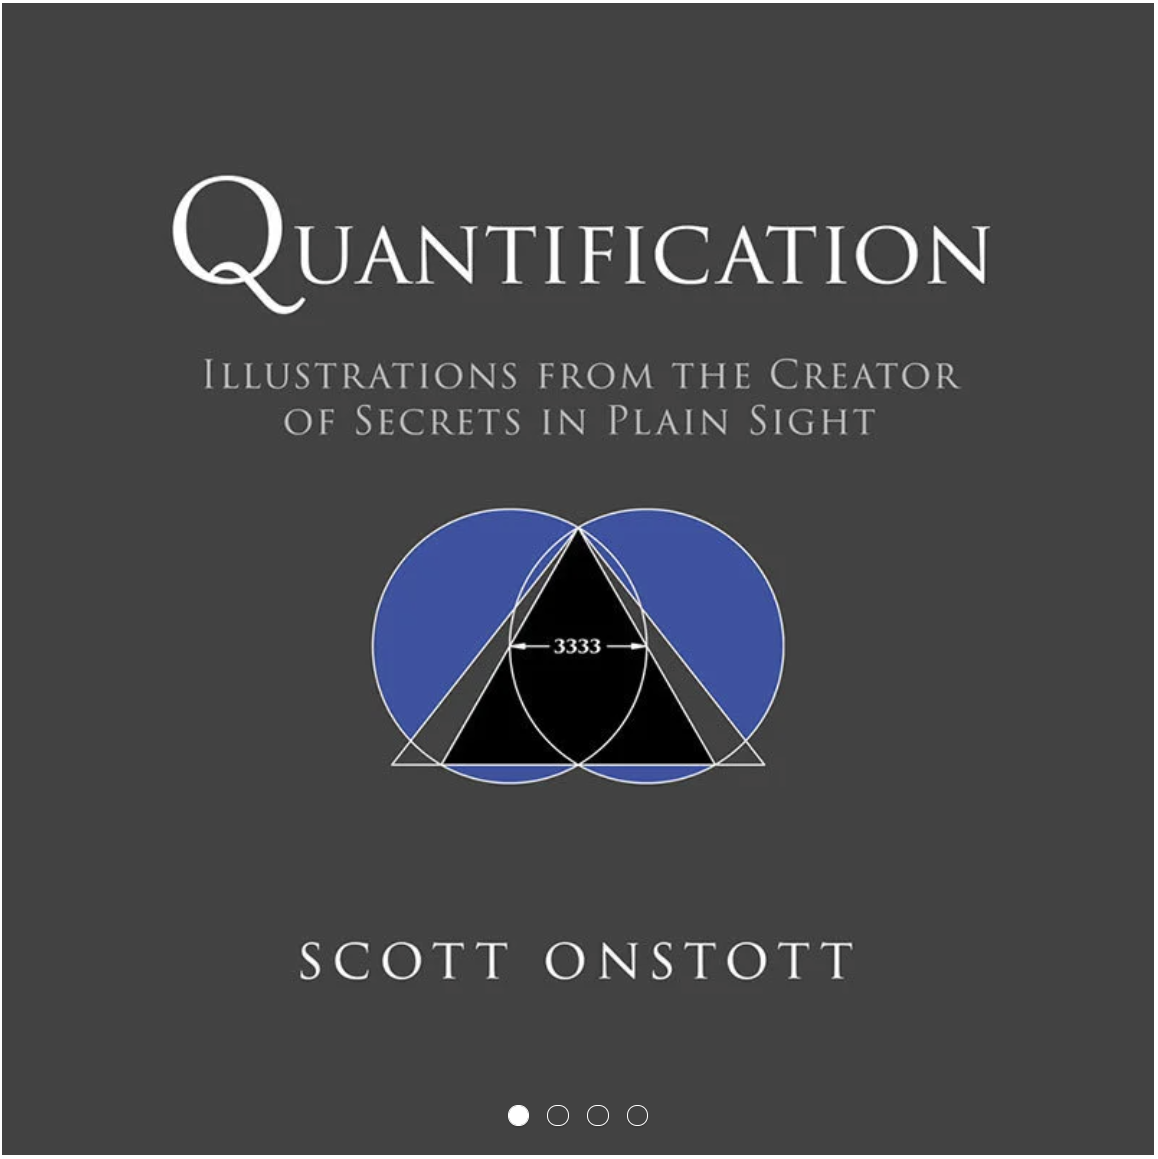 Quantification book cover